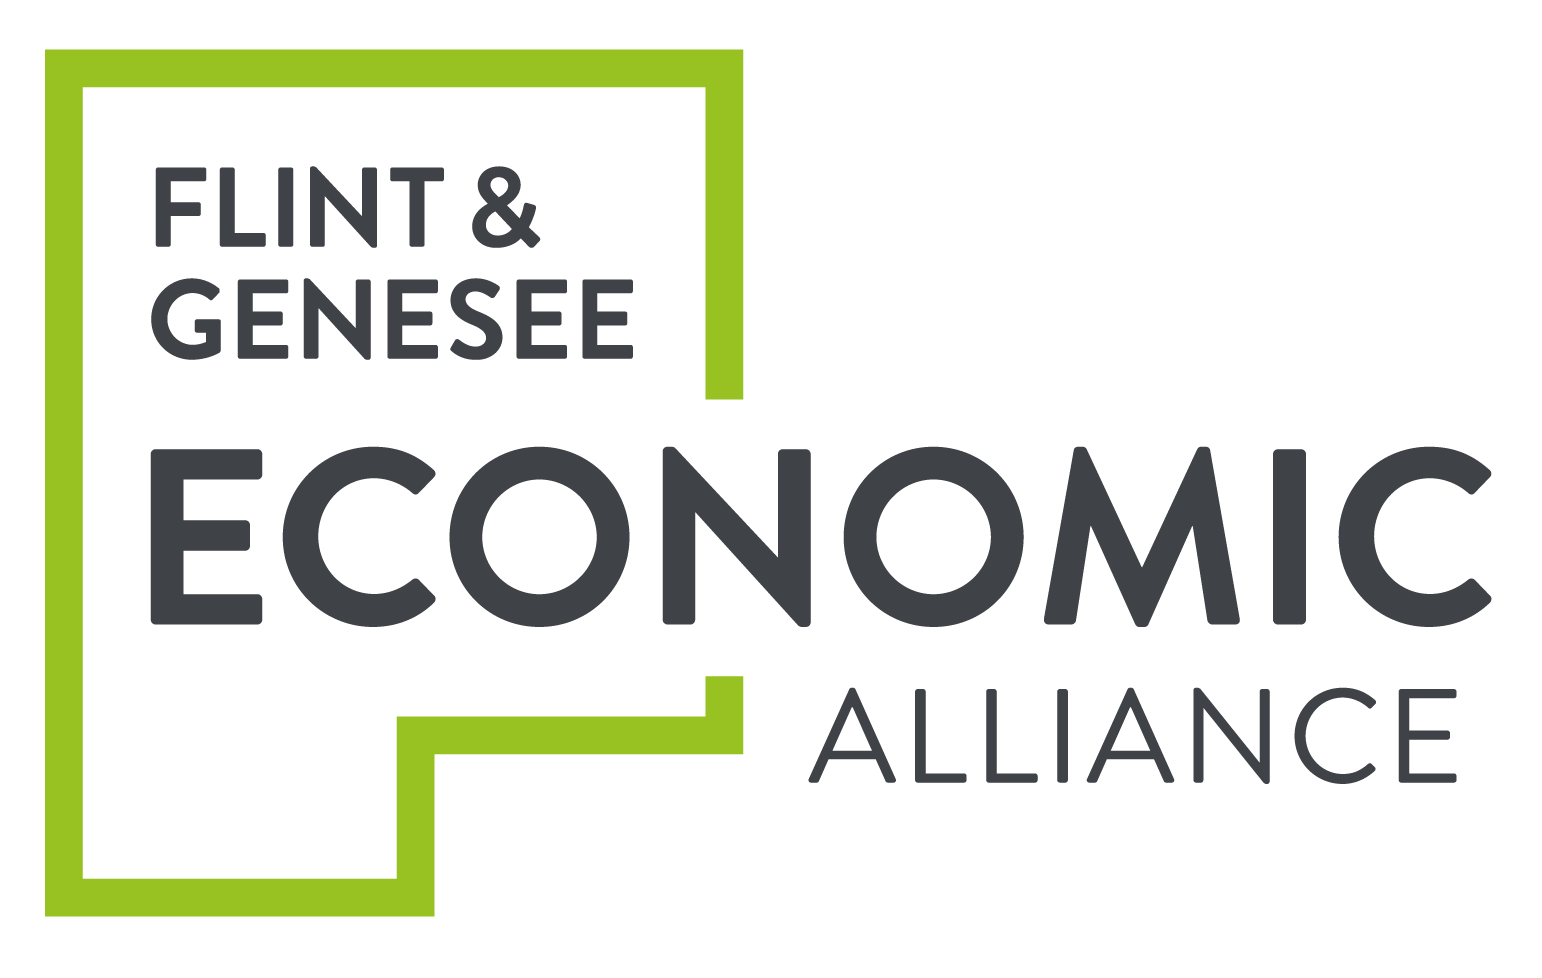 Flint and Genesee Economic Alliance